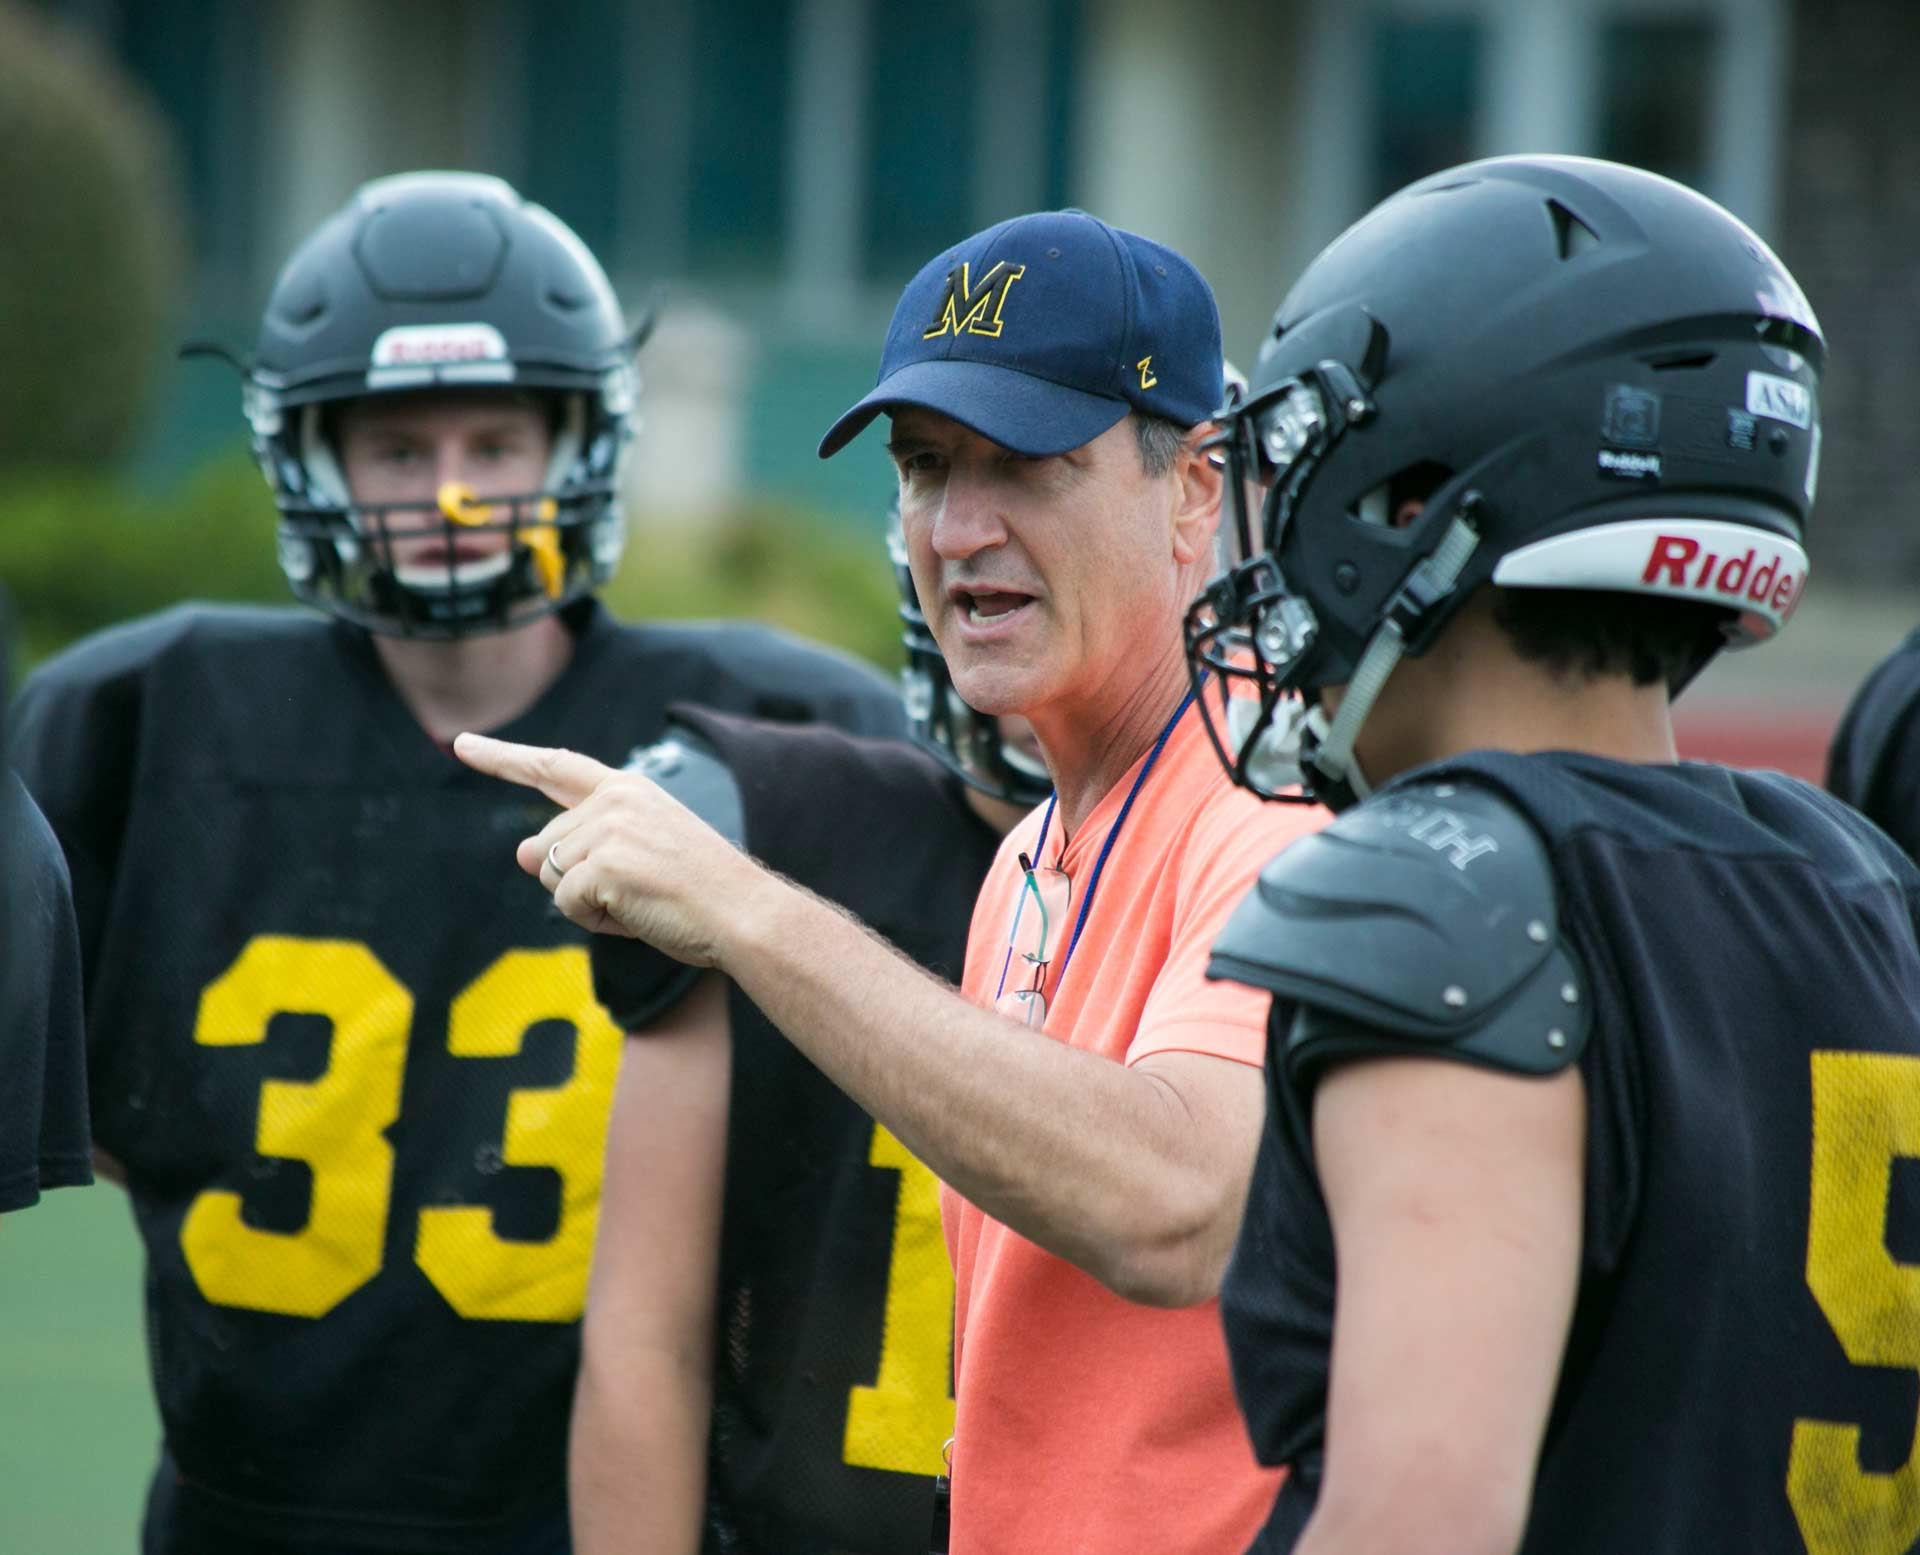 A Football Coach Talks to Geared-Up Players at Practice